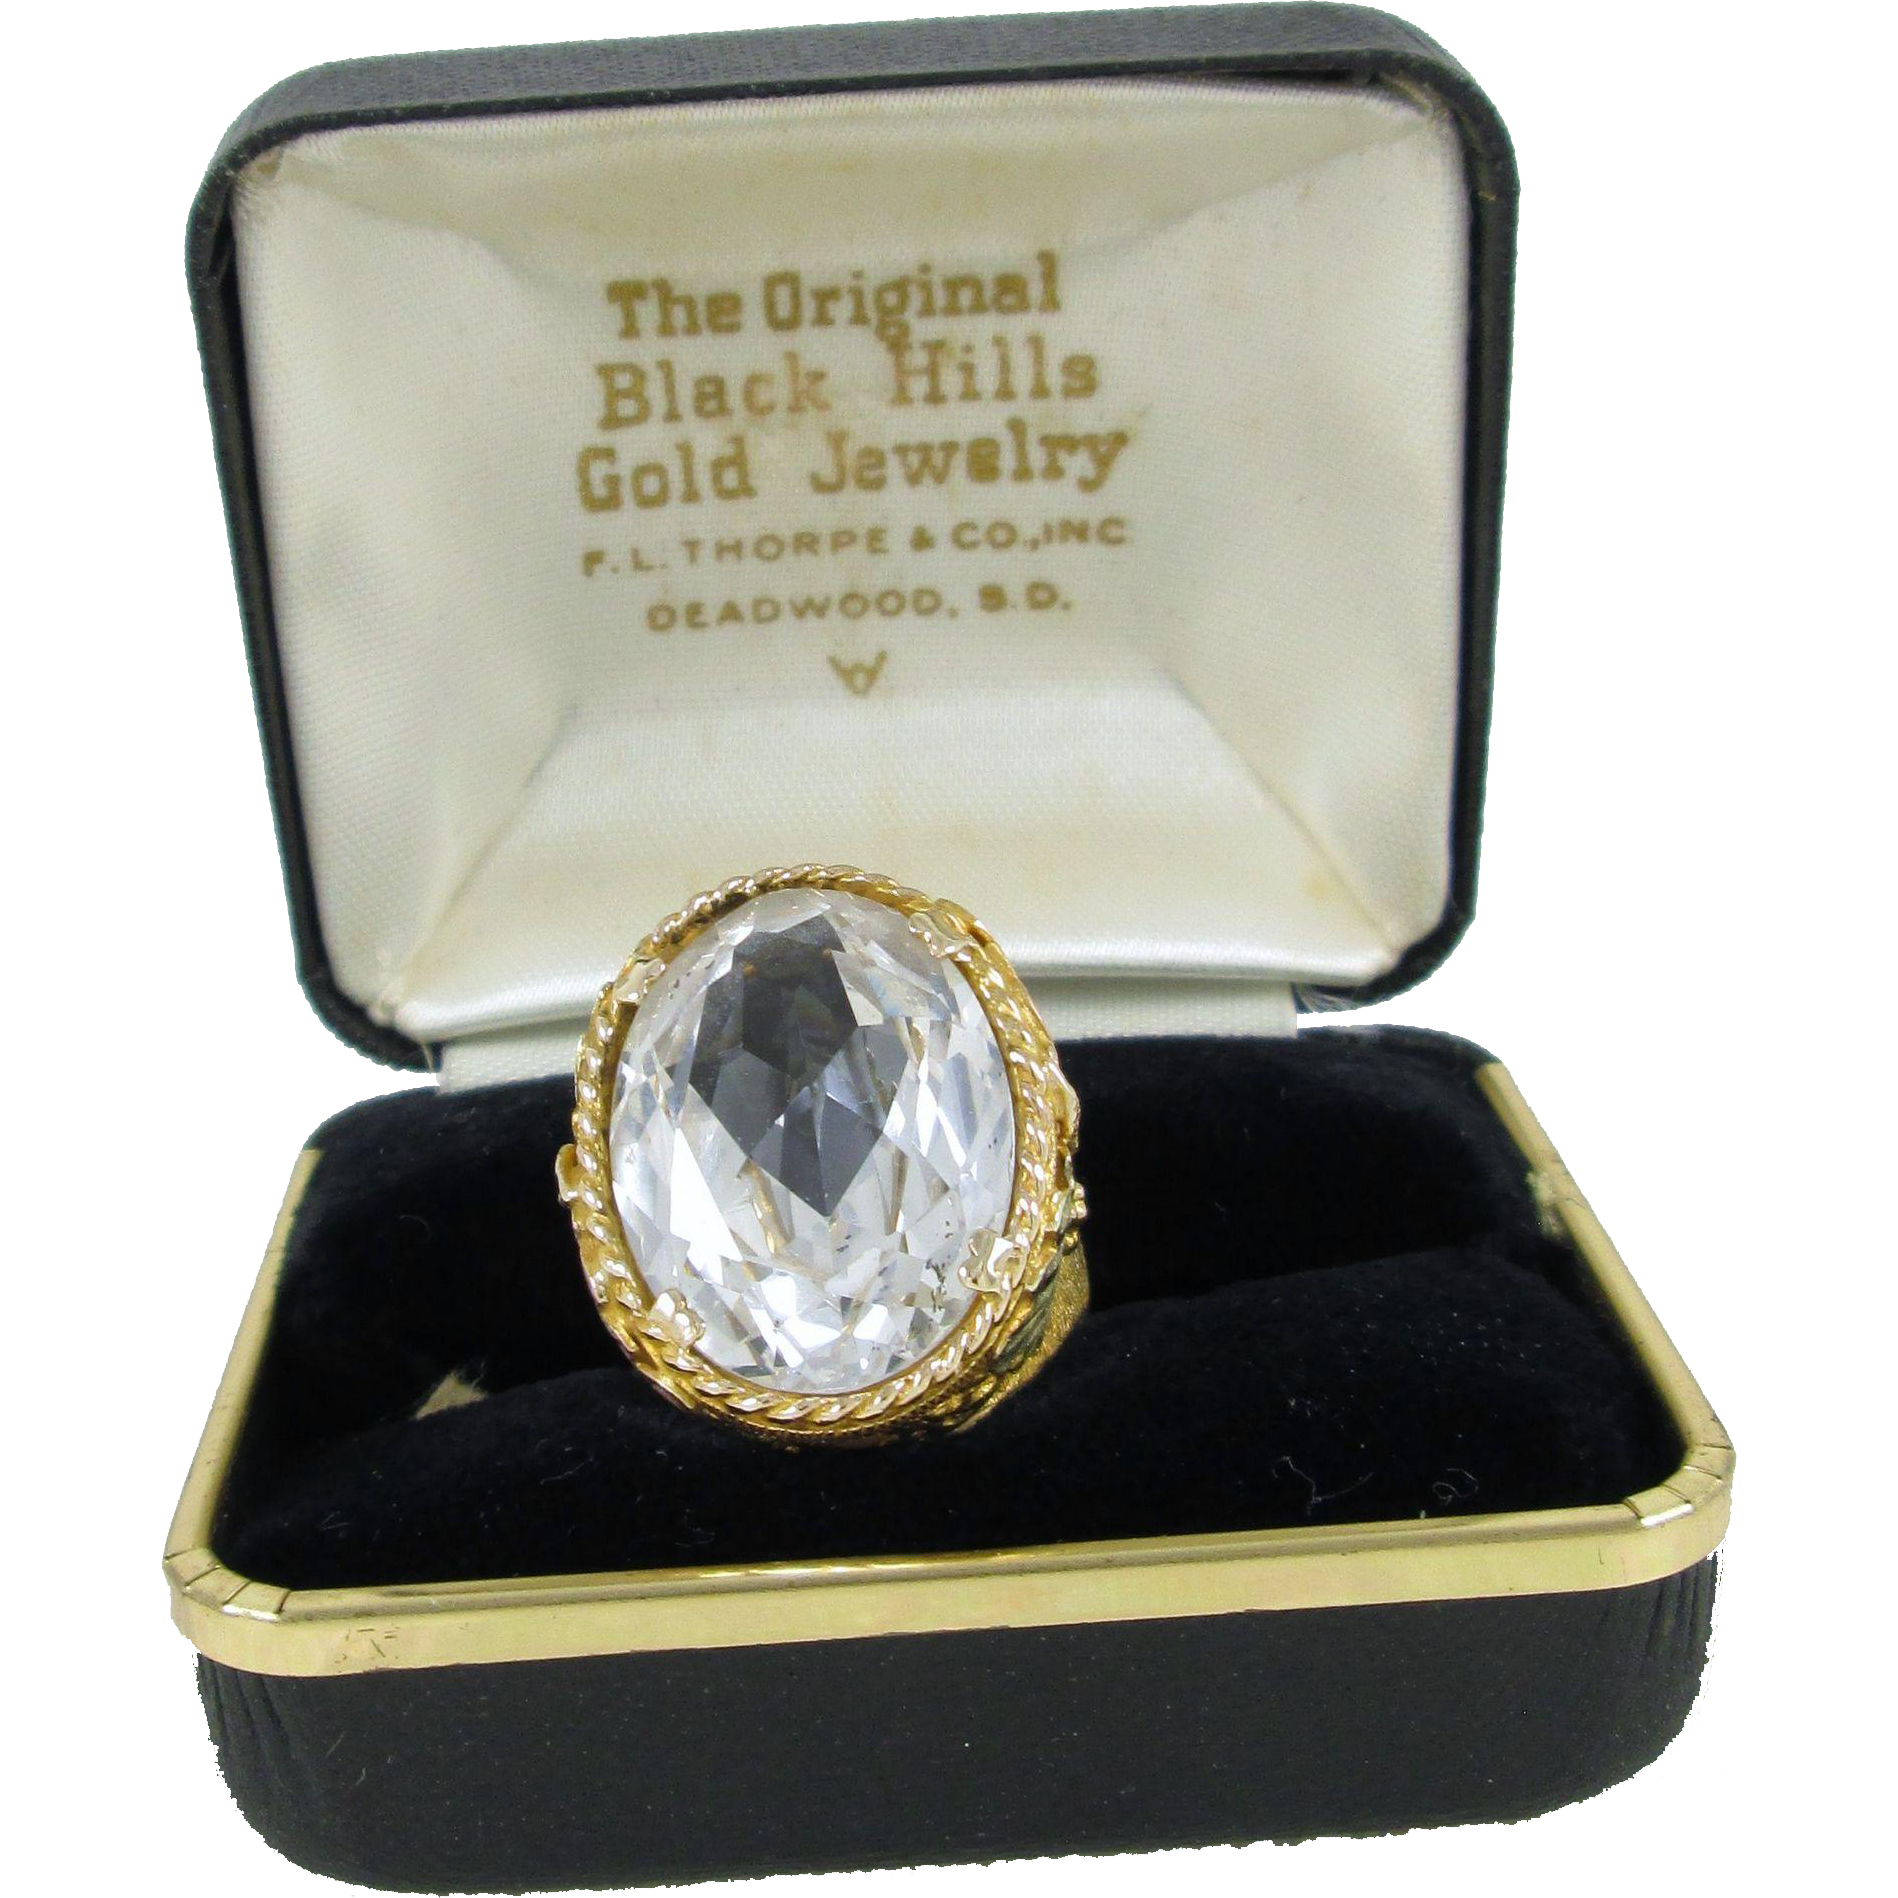 Black Hills Gold Ring with a Faceted Synthetic Oval Stone, Grapes, Leaves, Green, Pink, and Yellow Gold, 10K, F.L. Thorpe & Co., Deadwood, South Dakota, Size 7-1/4, 14.2 grams